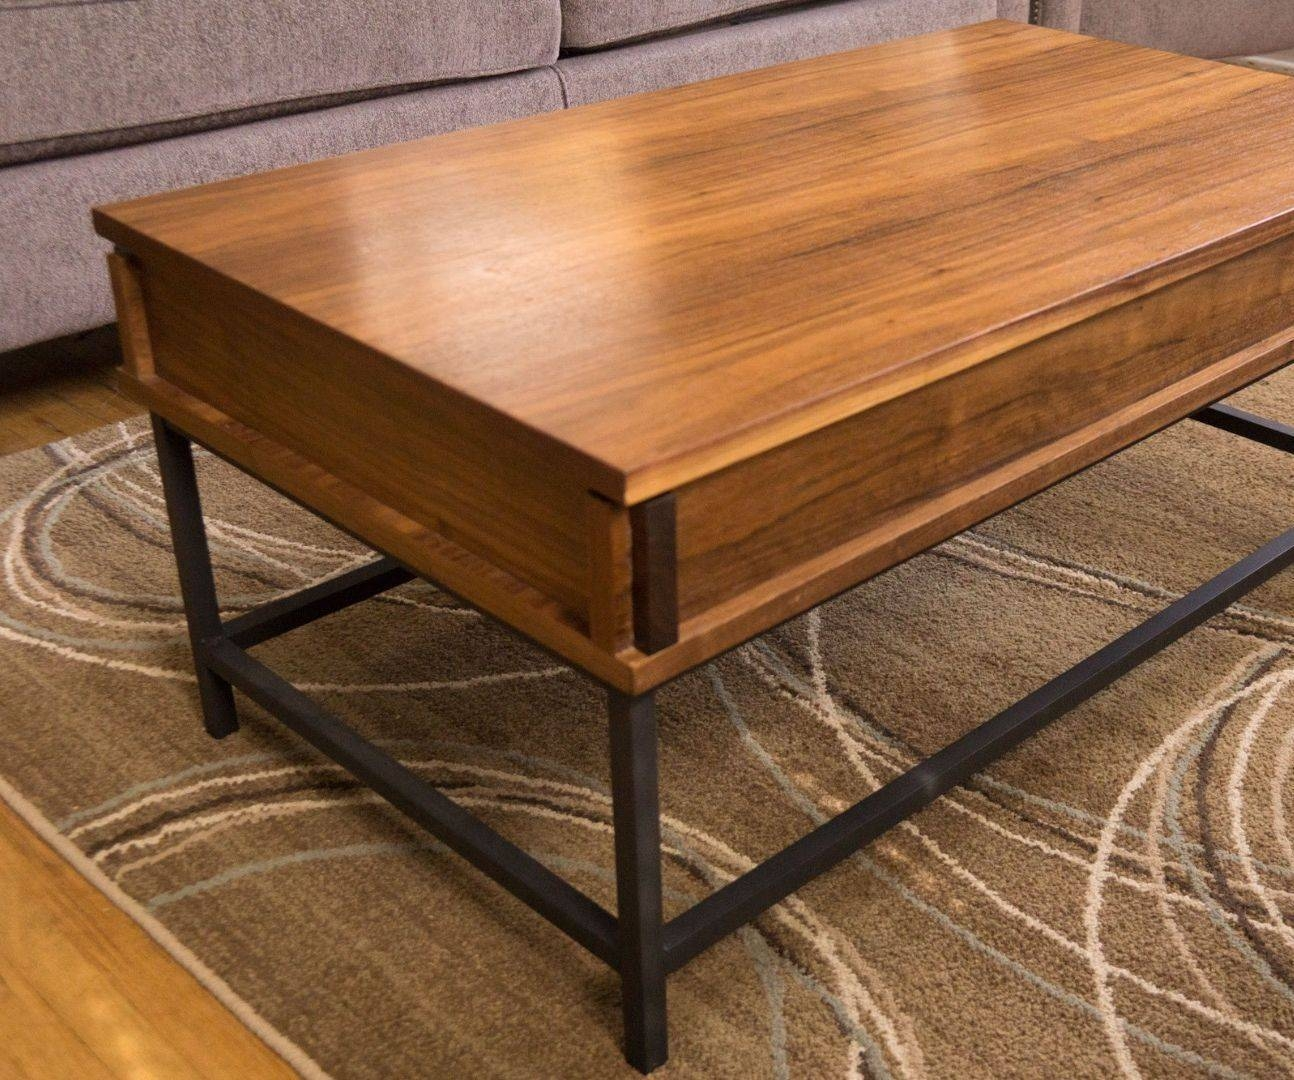 How To Make A Coffee Table With Lift Top: 18 Steps (With Pictures) with regard to Raisable Coffee Tables (Image 18 of 30)